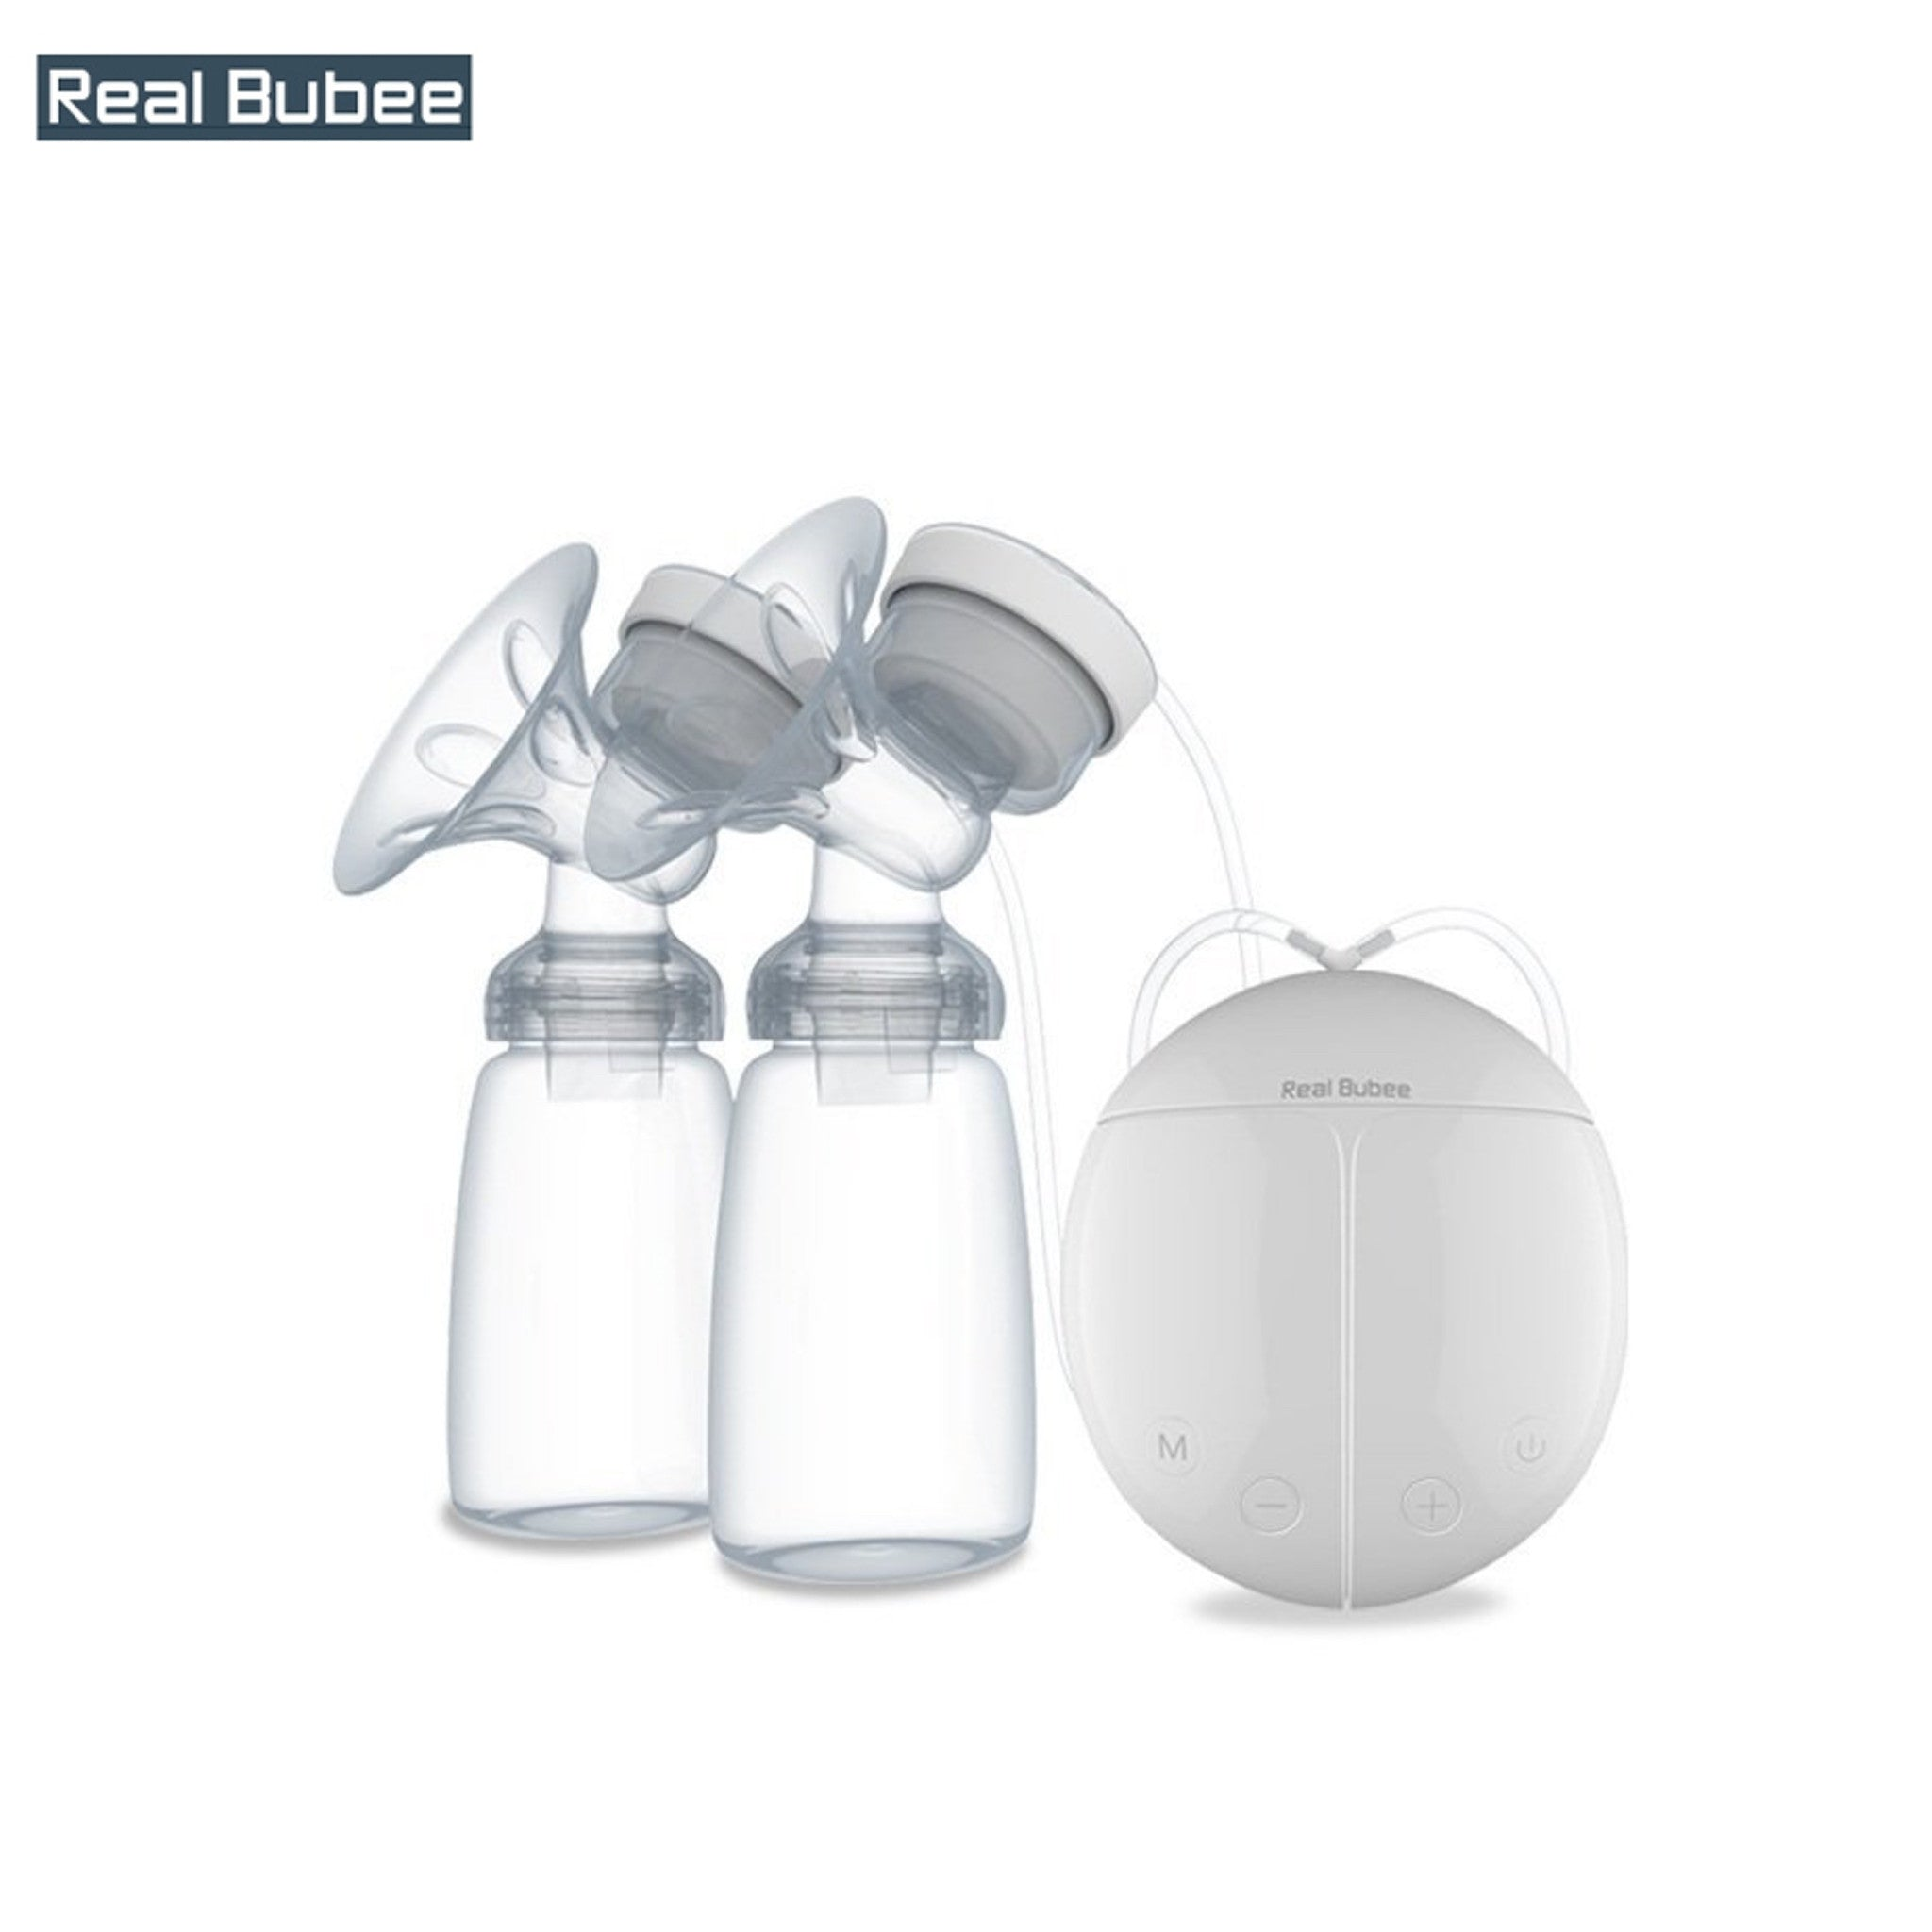 Real Bubee Intelligent Double Electric Pump Set